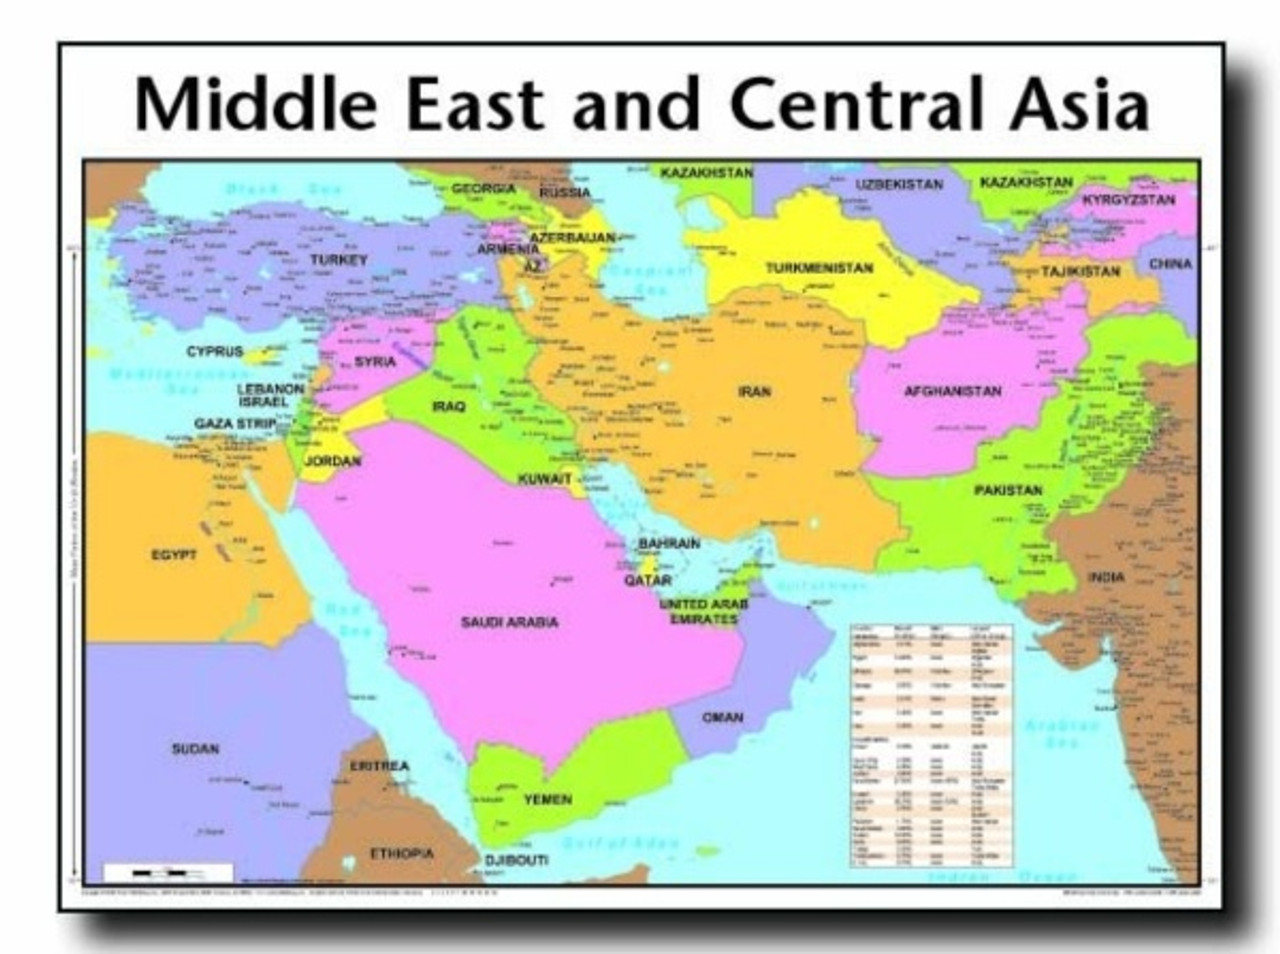 Map Of Asia And Middle East.Middle East And Central Asia Map Wall Chart Laminated